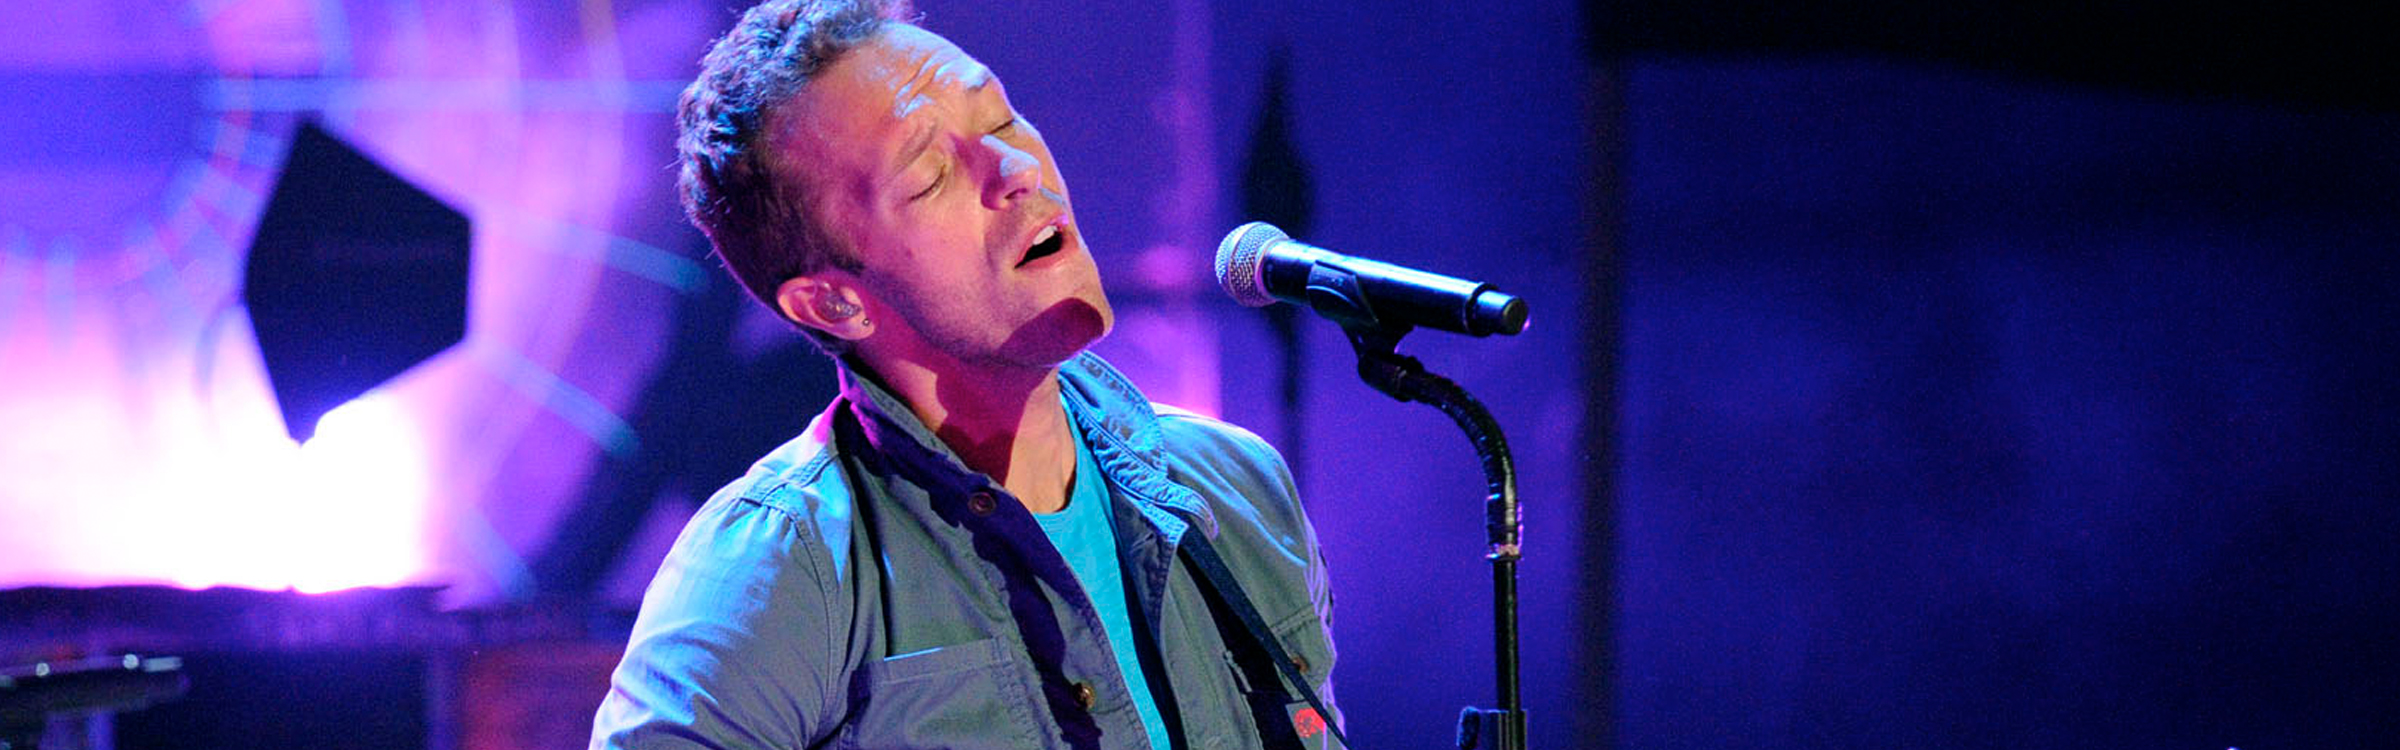 Header chris martin